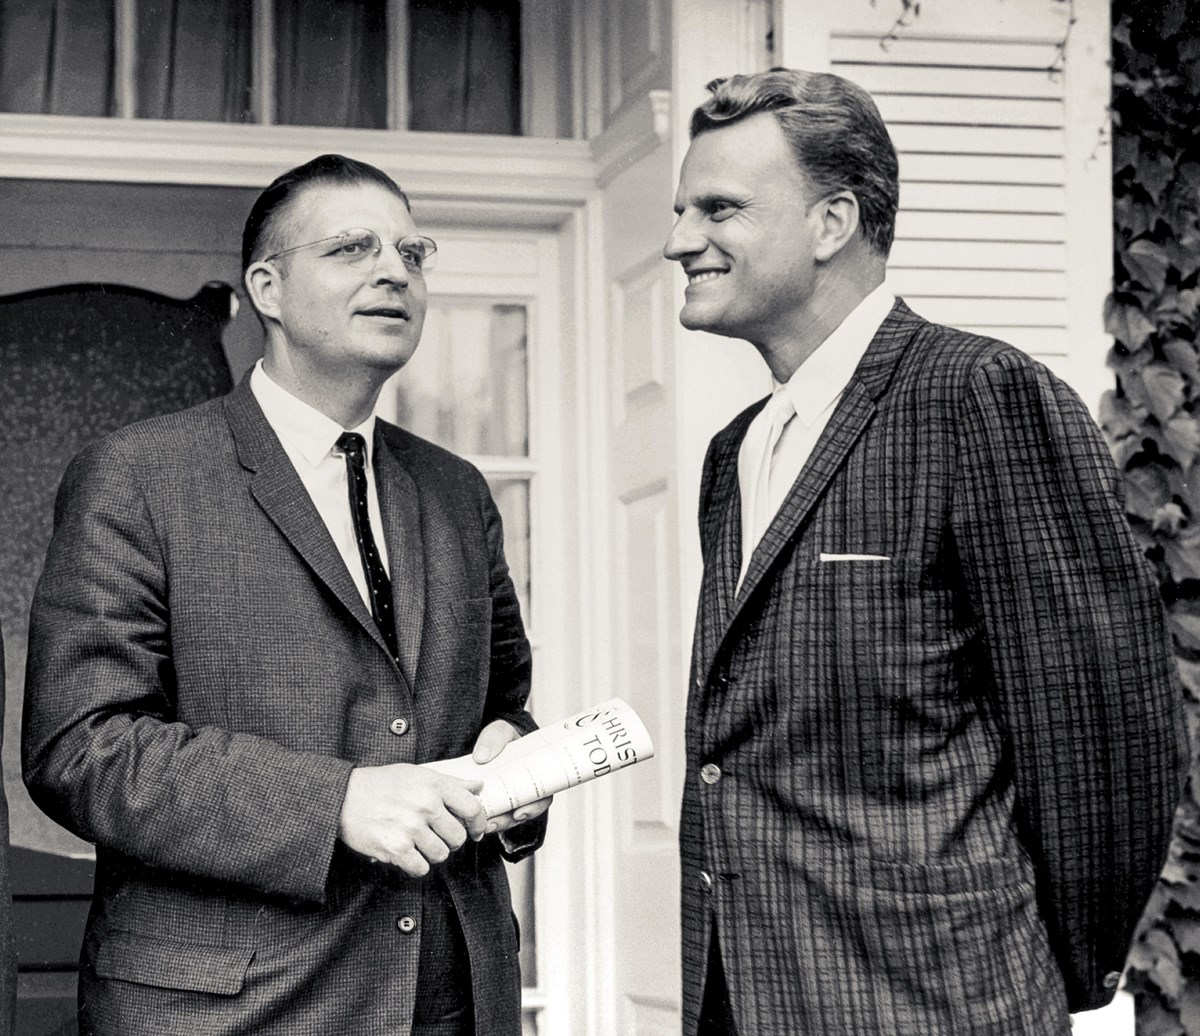 Founder Billy Graham with Carl F.H. Henry, editor, who is holding the first issue of Christianity Today.